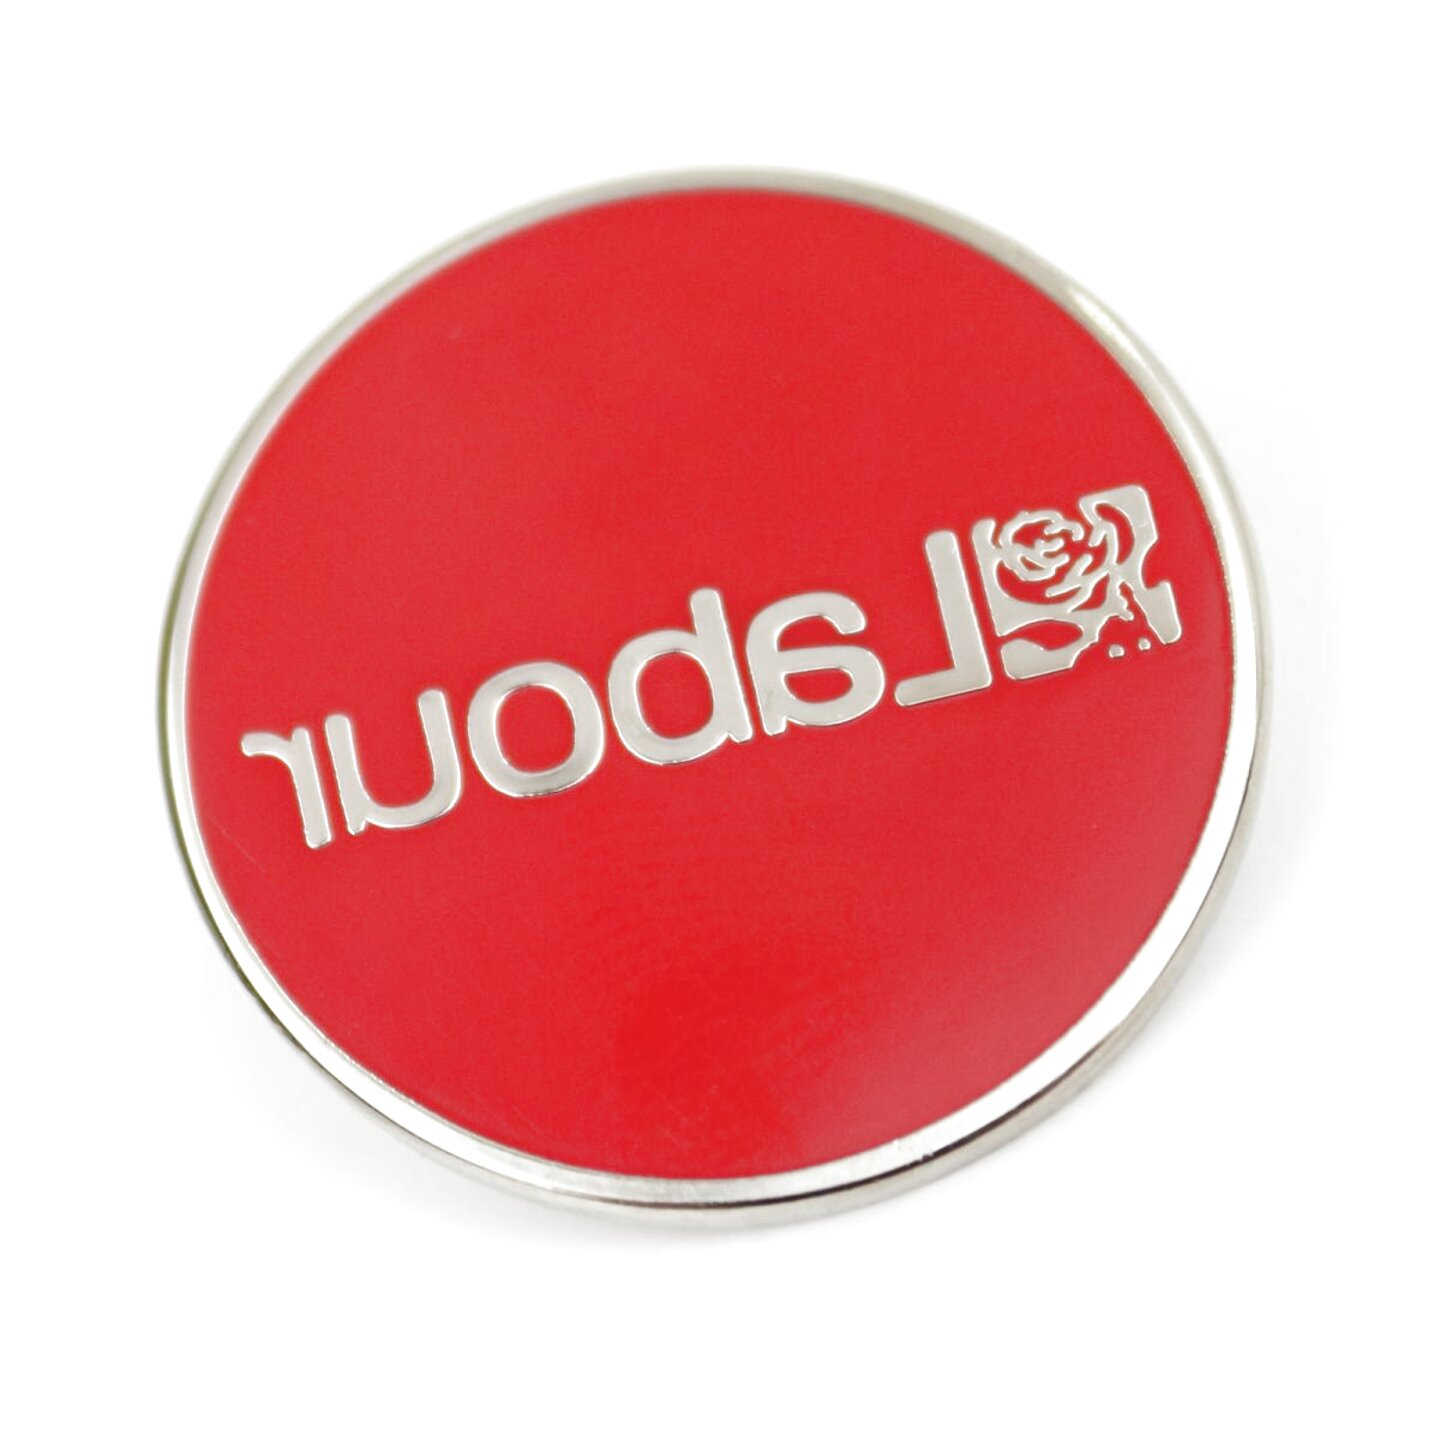 labour badge for sale